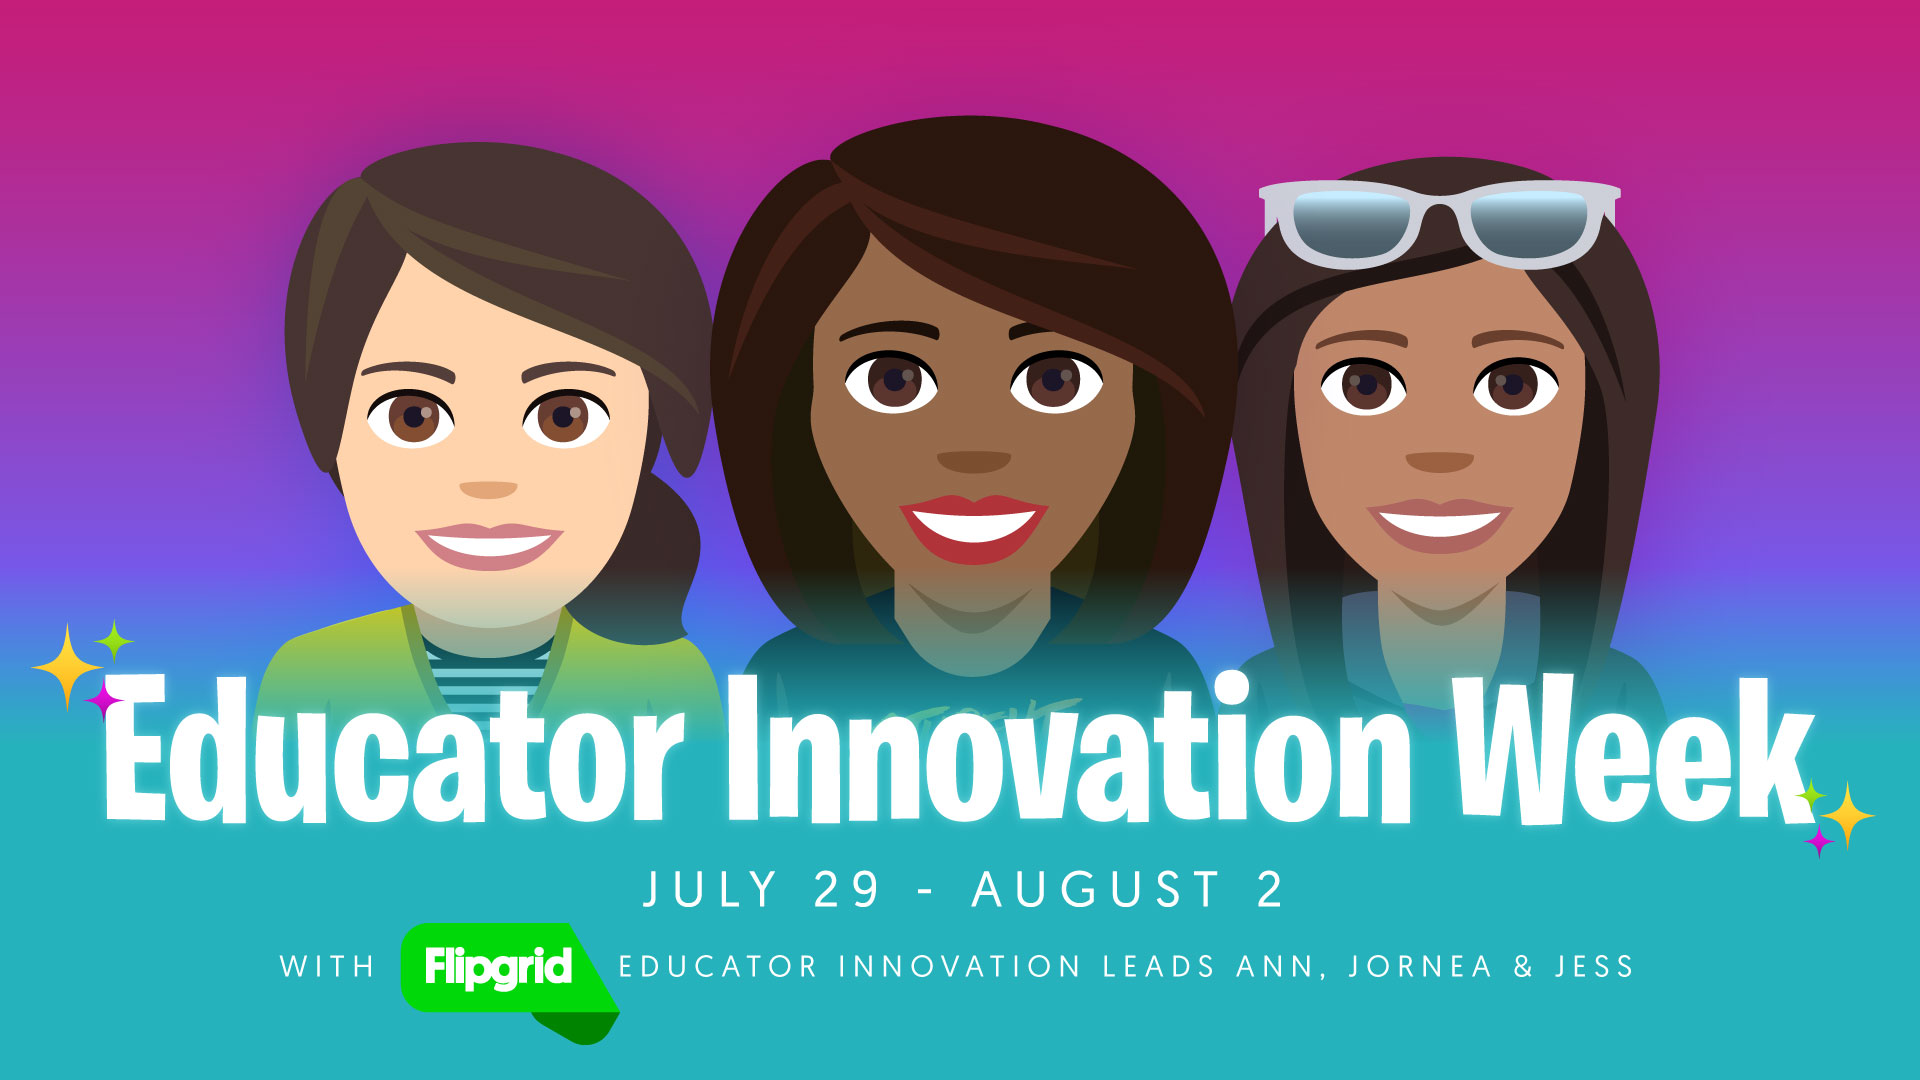 Educator Innovation Week 2019